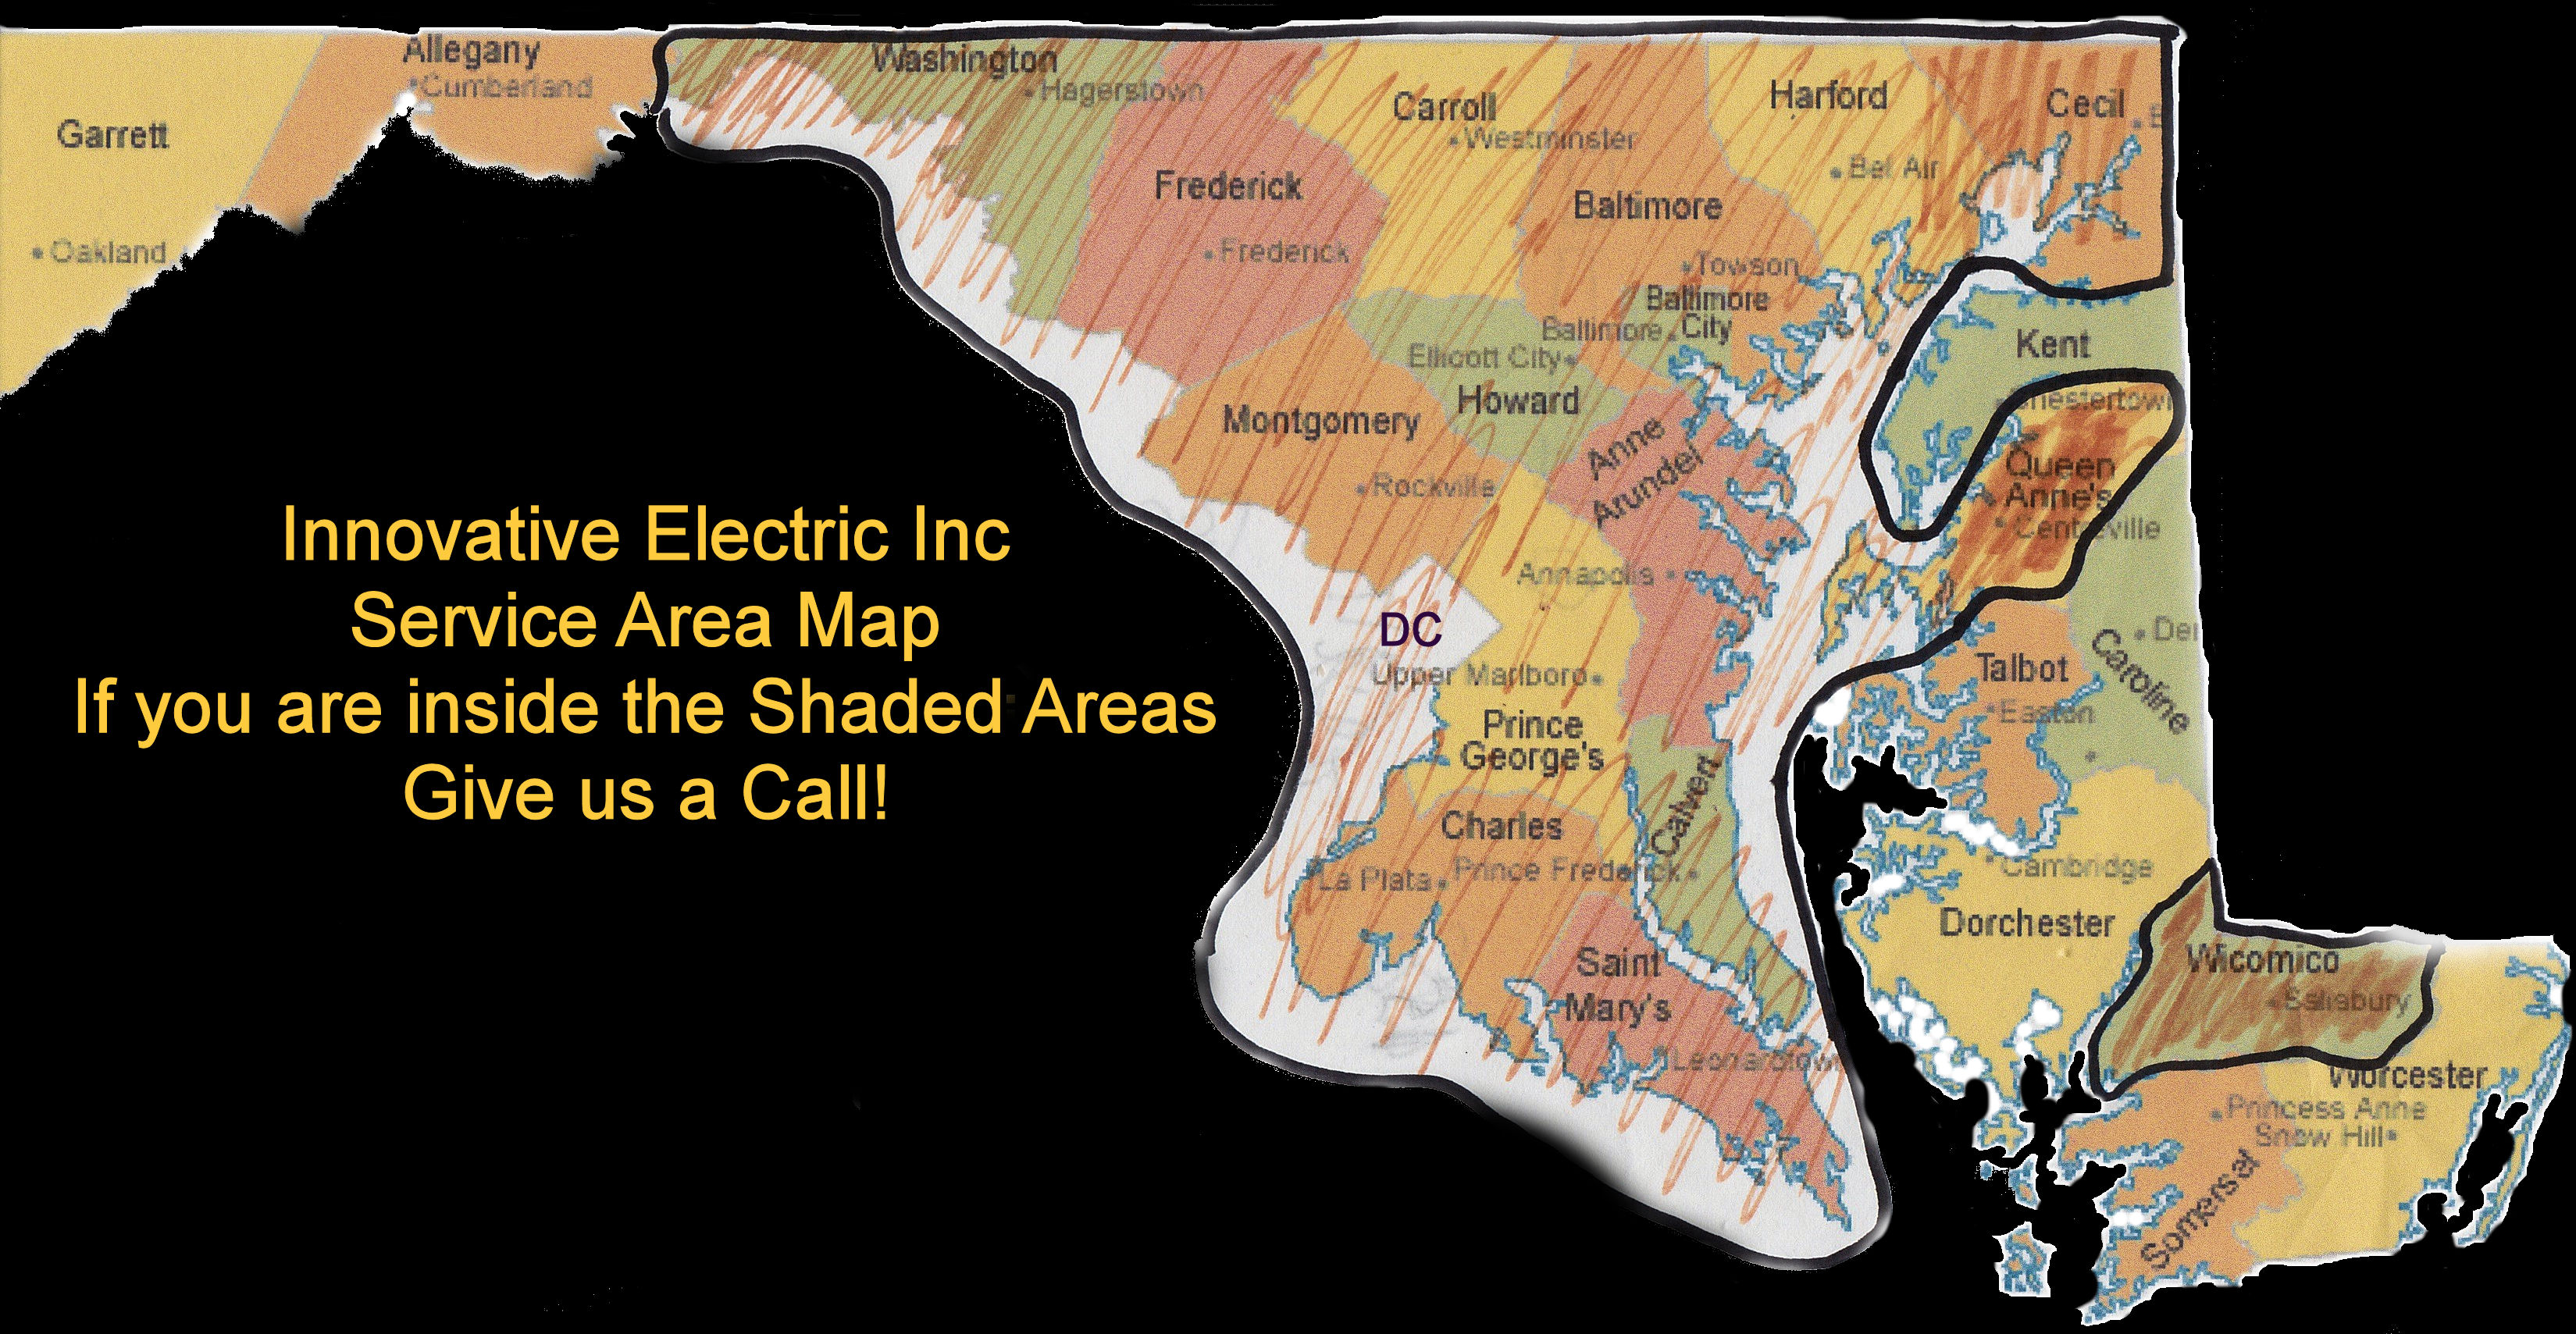 Innovative Electric Inc. Provides Electrician Services in Baltimore MD and Surrounding Areas